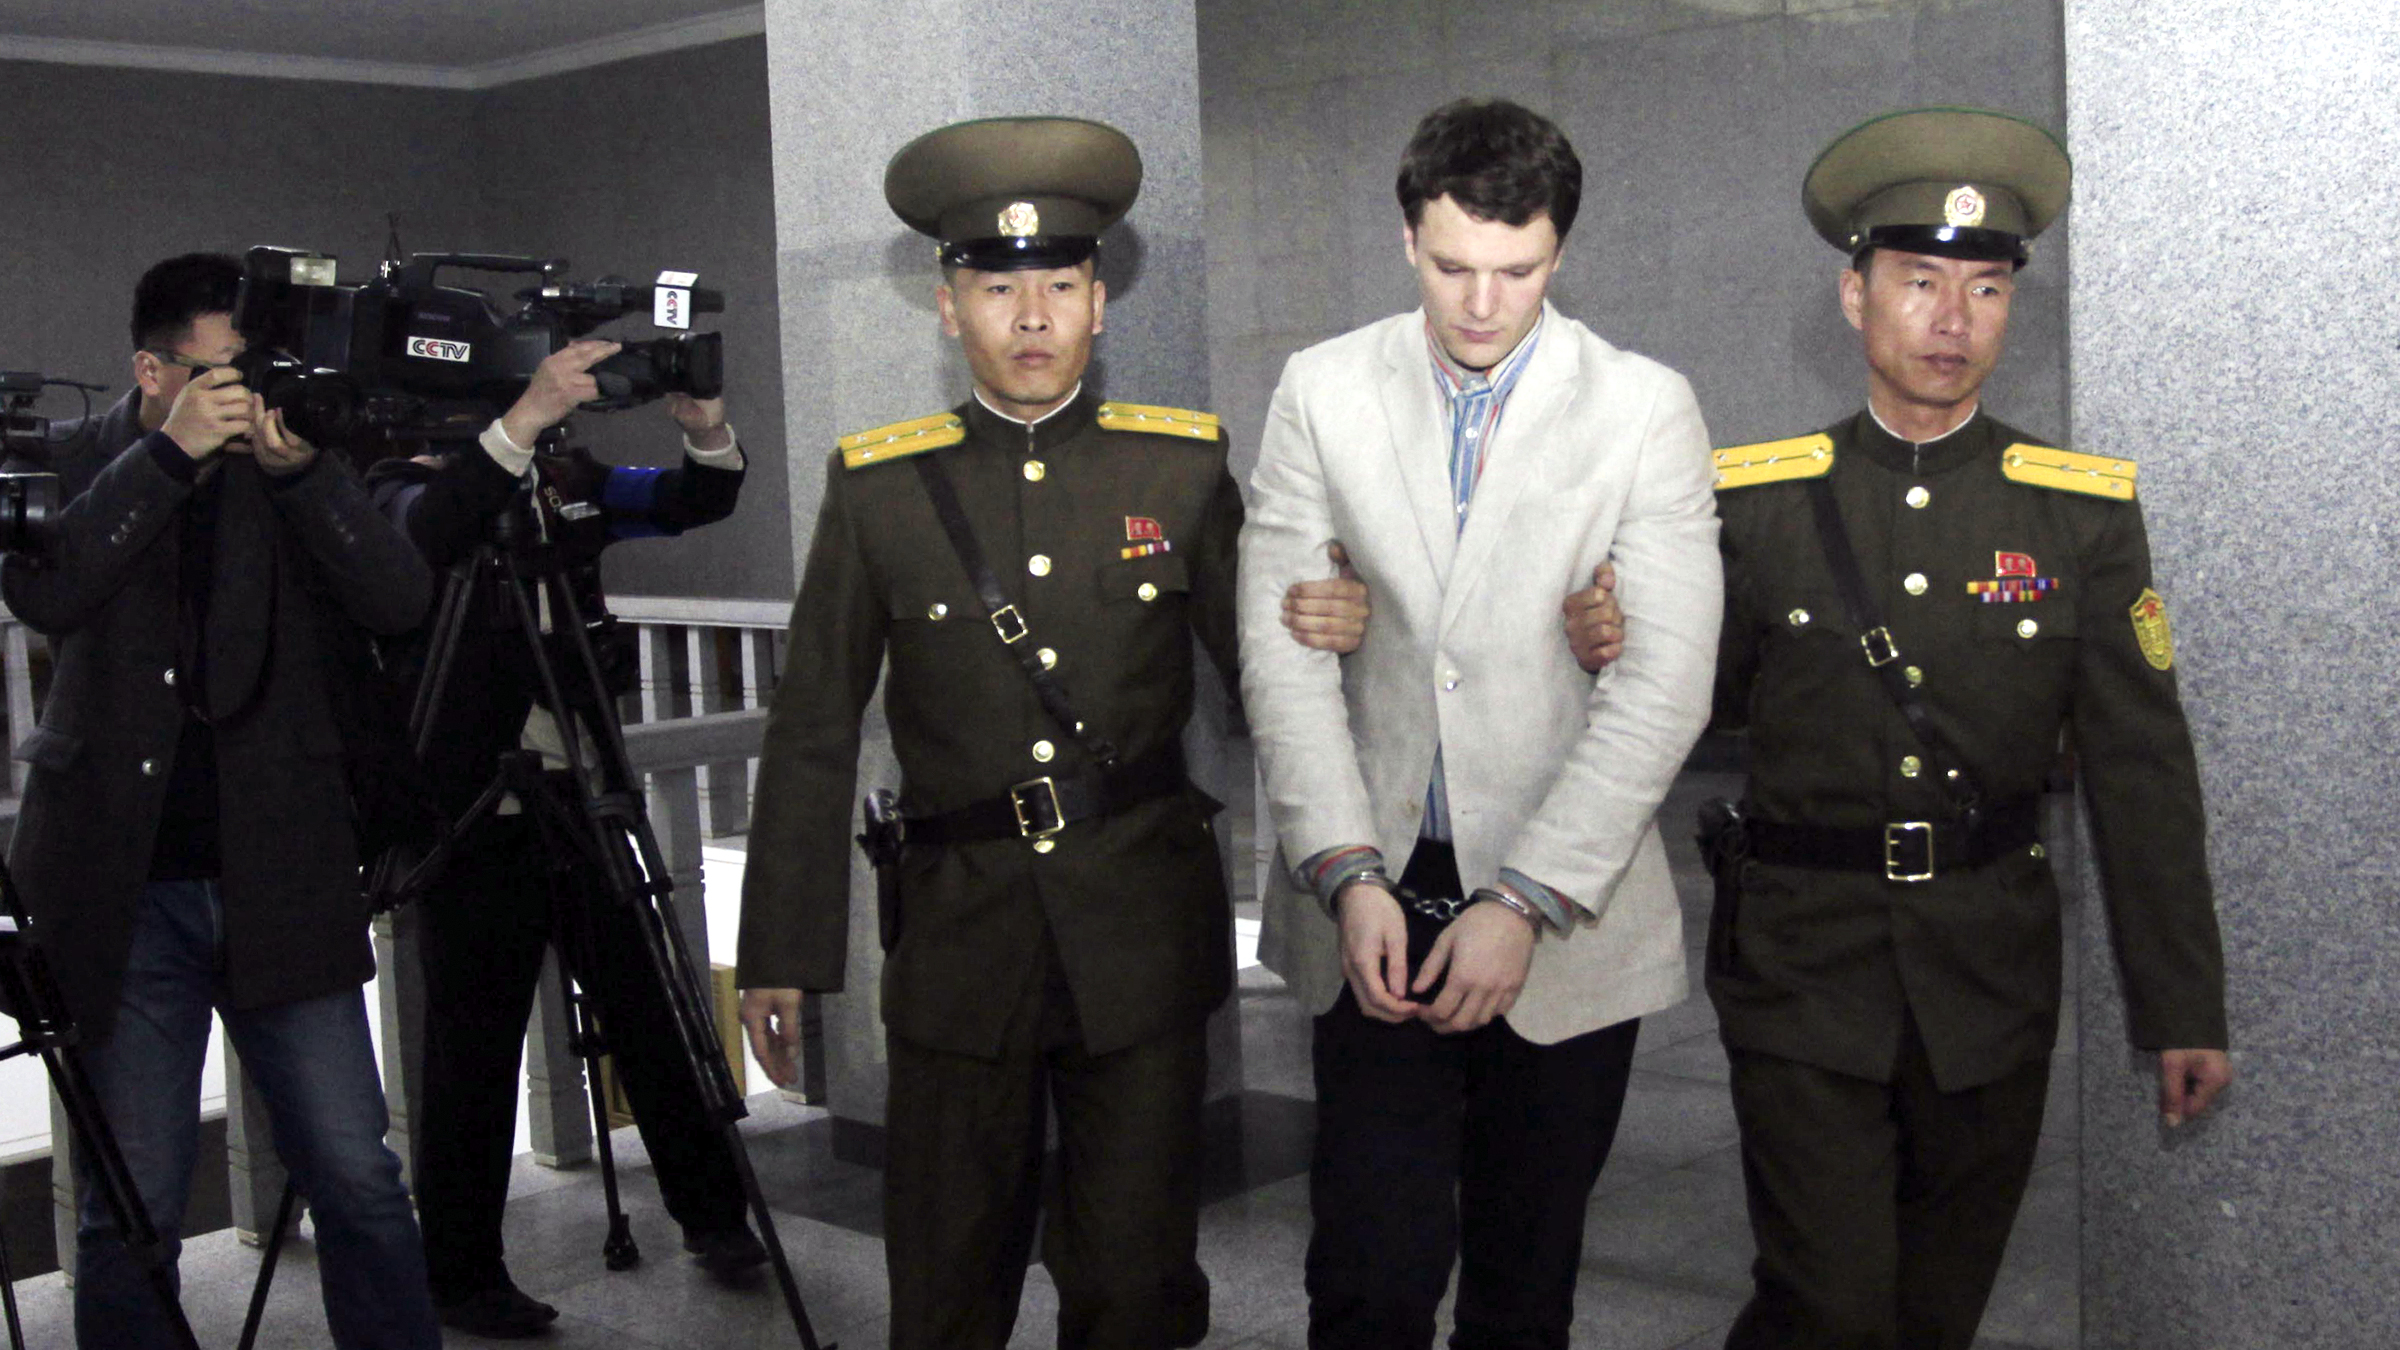 American student Otto Warmbier, center, is escorted at the Supreme Court, Wednesday, March 16, 2016, in Pyongyang, North Korea. North Korea's highest court sentenced Warmbier, a 21-year-old University of Virginia undergraduate student, from Wyoming, Ohio, to 15 years in prison with hard labor on Wednesday for subversion. He allegedly attempted to steal a propaganda banner from a restricted area of his hotel at the request of an acquaintance who wanted to hang it in her church.